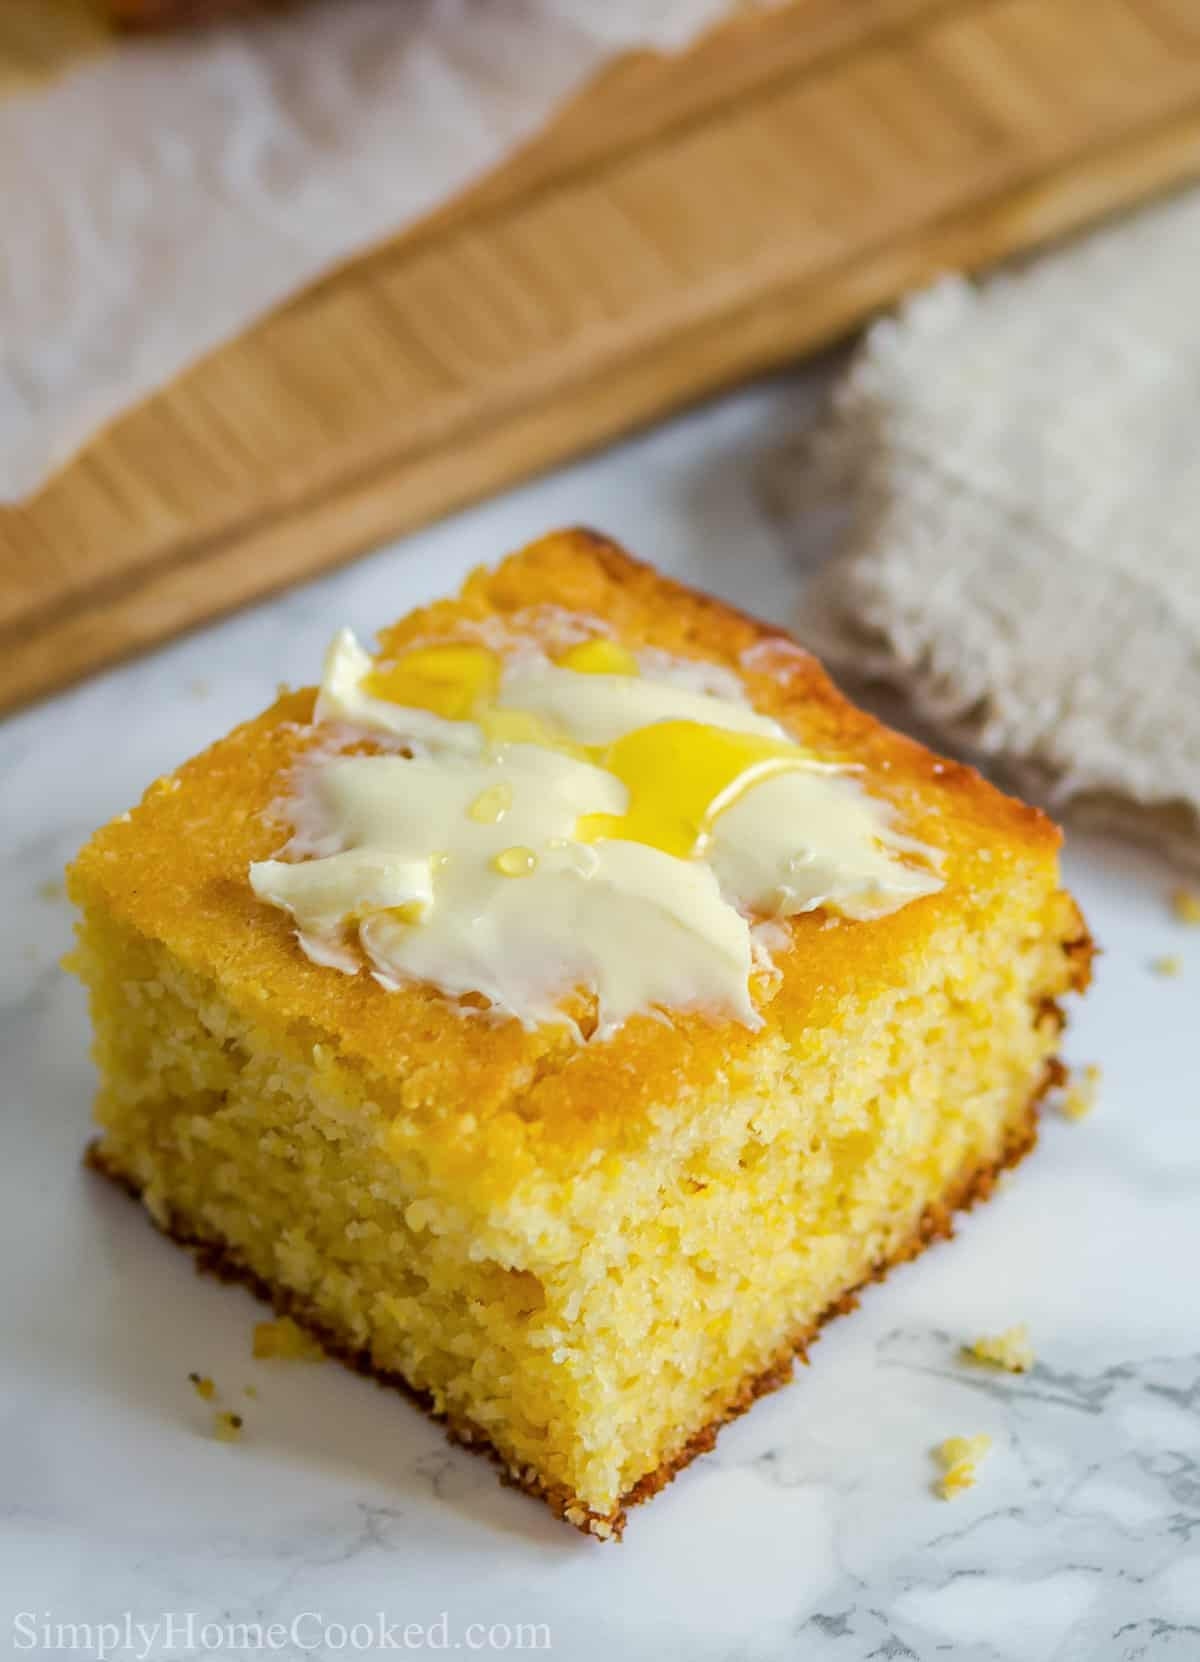 Moist Buttermilk Cornbread slice with butter and honey on top, on a white plate.